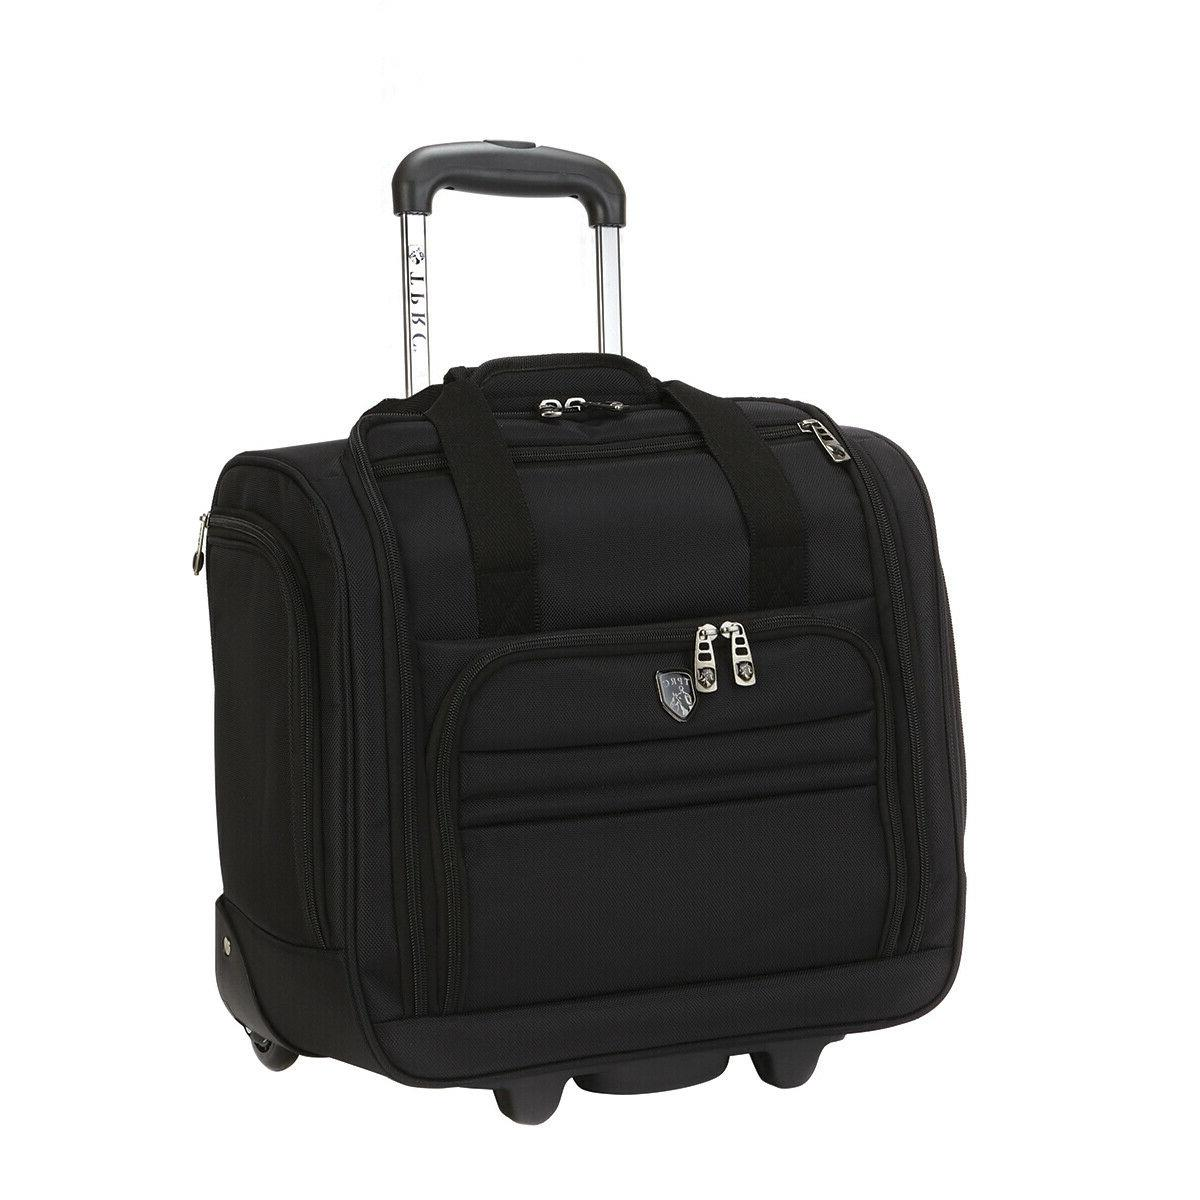 16 Inch Luggage Underseater Travel NEW